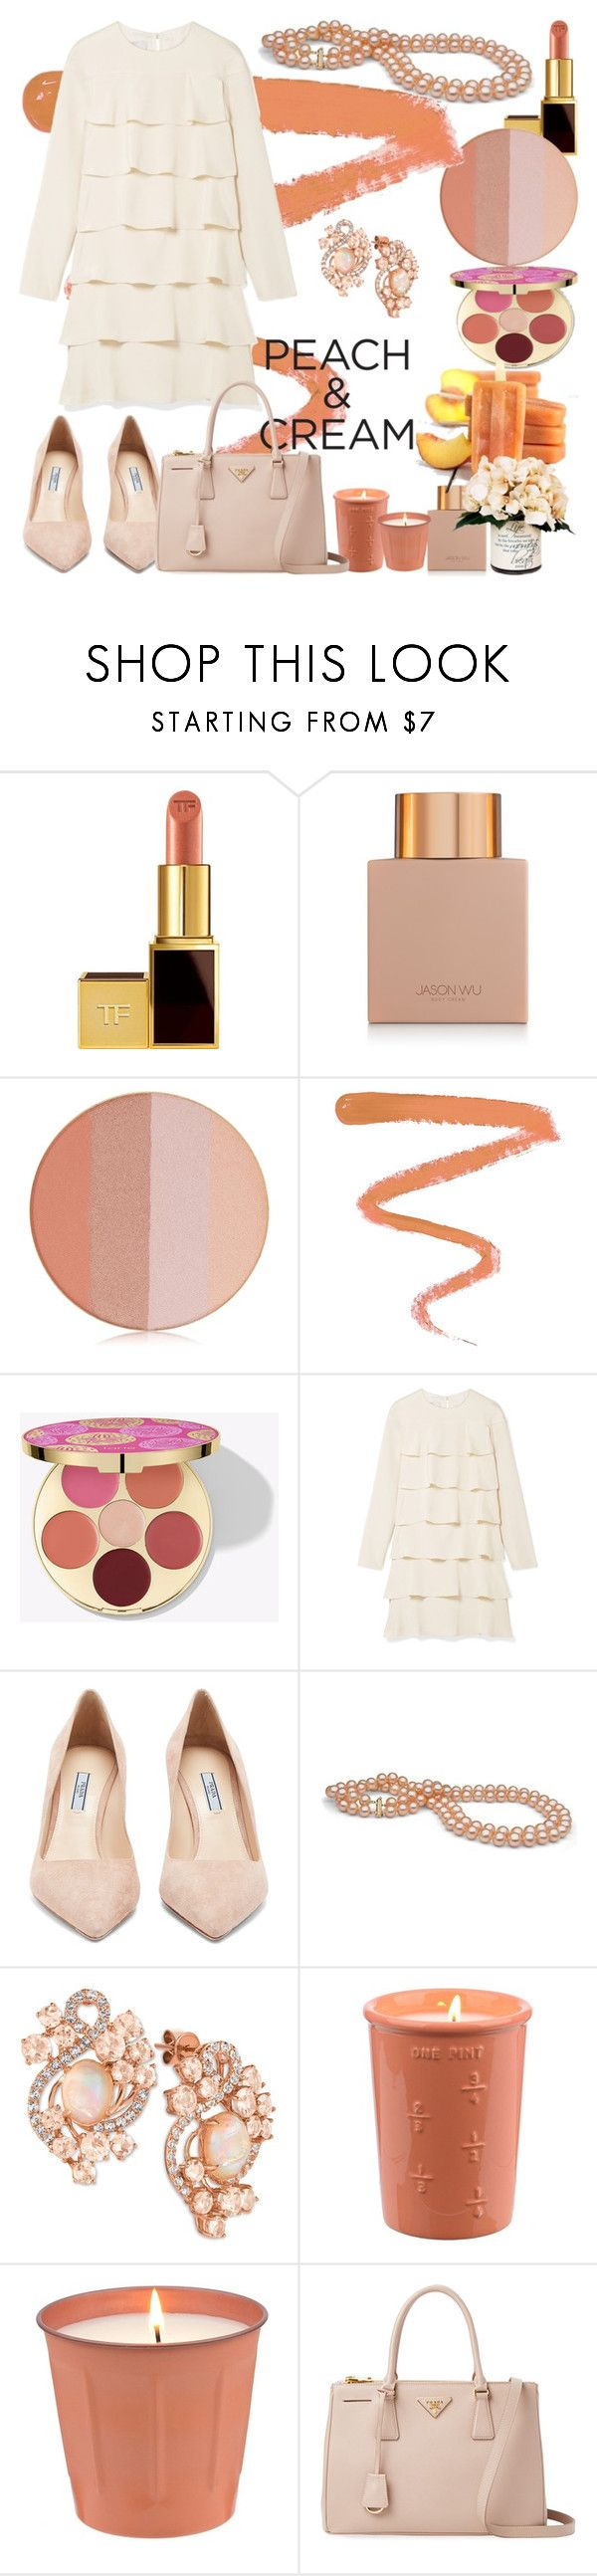 """Peach and Cream"" by nefertiti1373 ❤ liked on Polyvore featuring beauty, Tom Ford, Jason Wu, Ellis Faas, Valentino, Prada, LE VIAN, Creative Displays and peachlipstick"